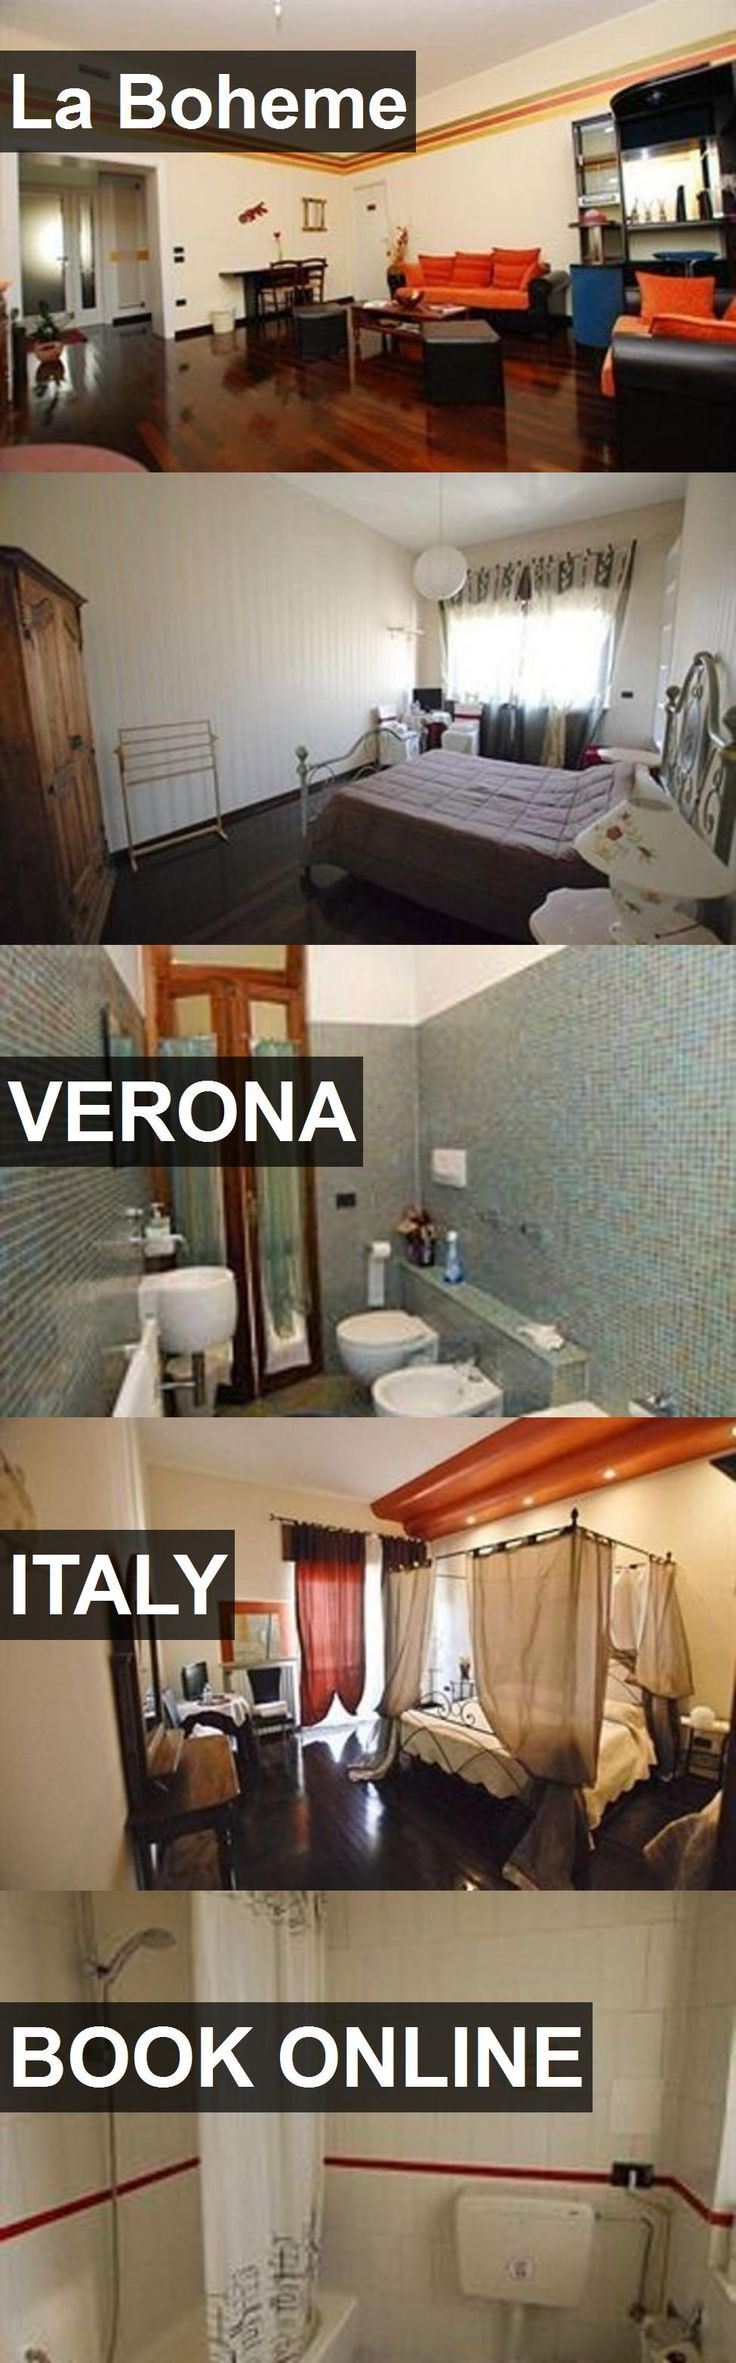 Hotel La Boheme in Verona, Italy. For more information, photos, reviews and best prices please follow the link. #Italy #Verona #LaBoheme #hotel #travel #vacation